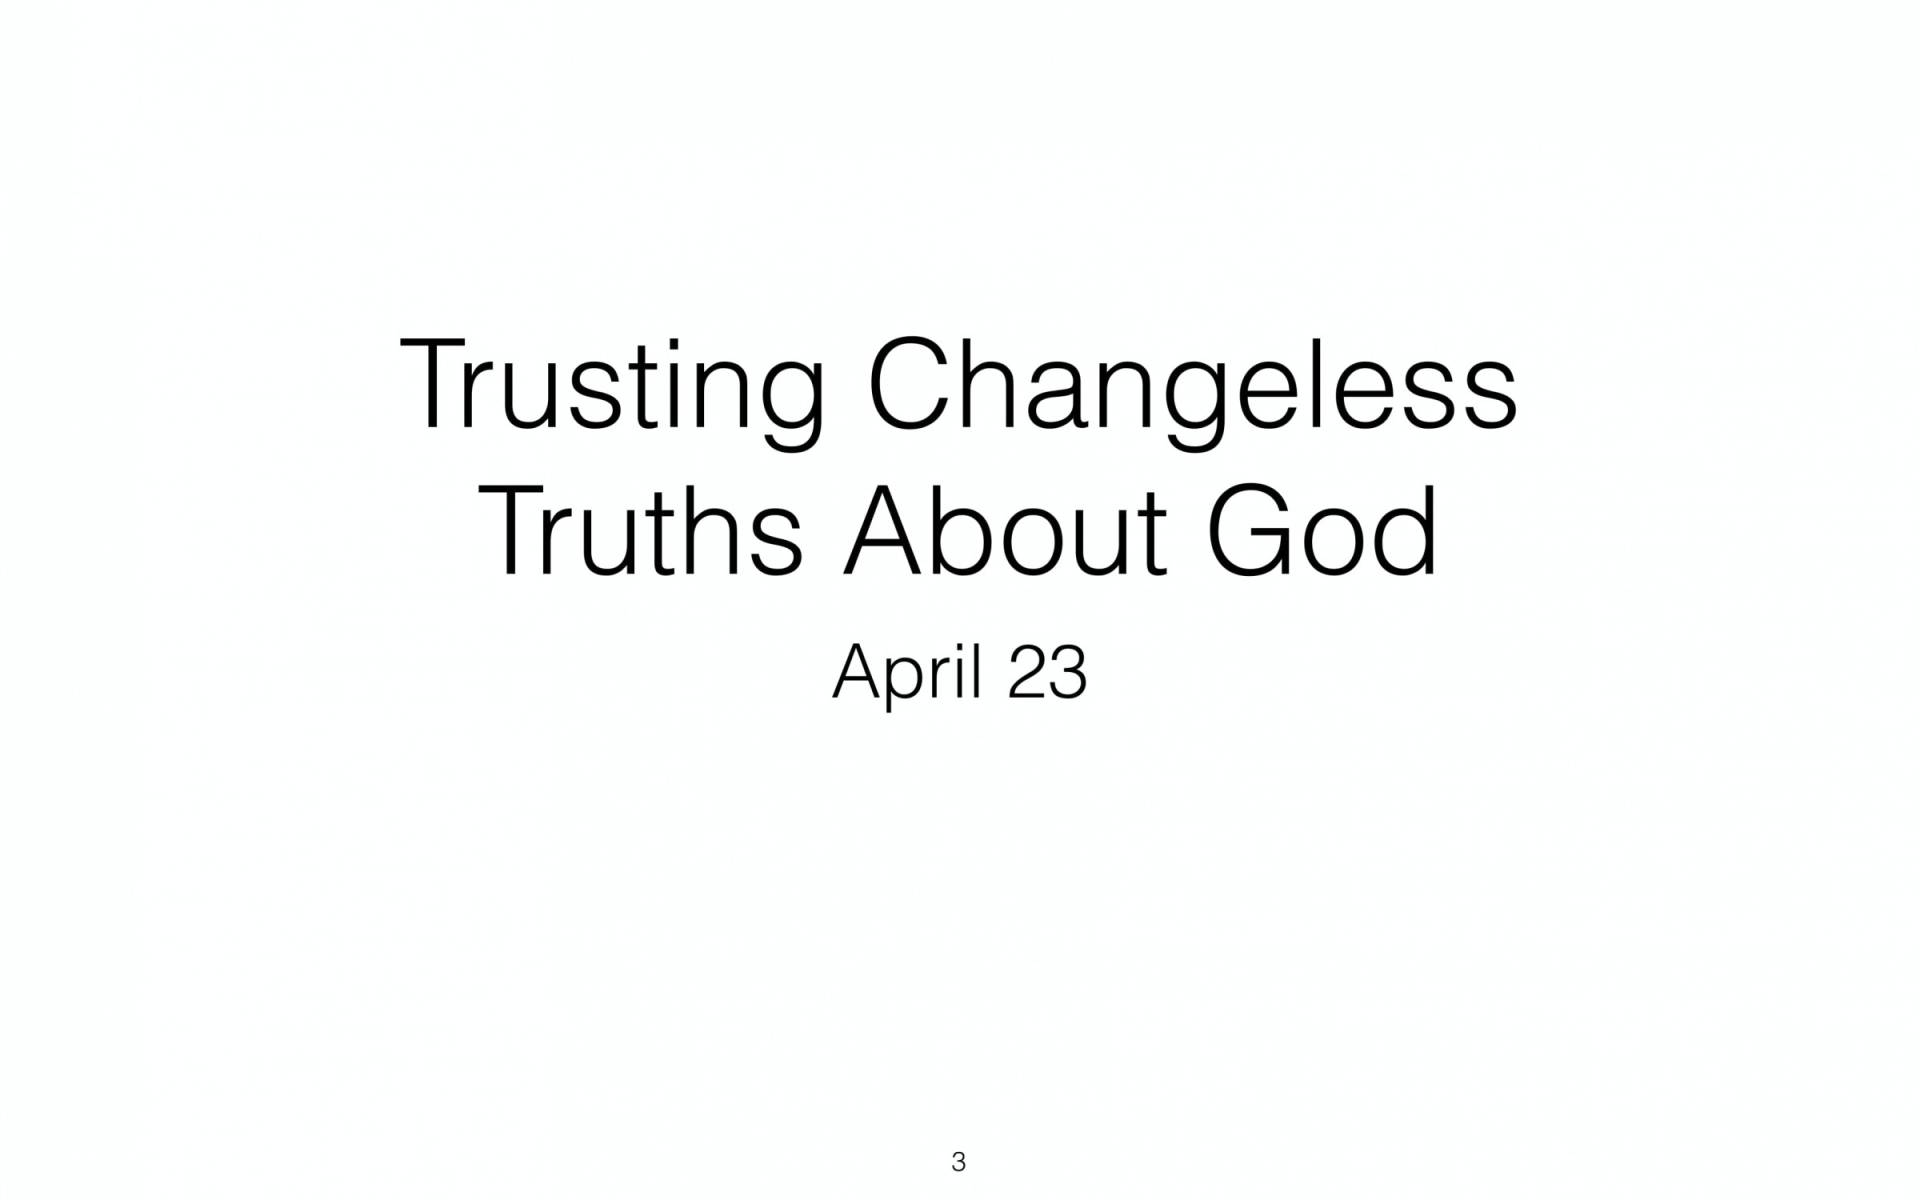 BC&D-54 - Lesson 22-1 - Trusting Changeless Truths About God-03